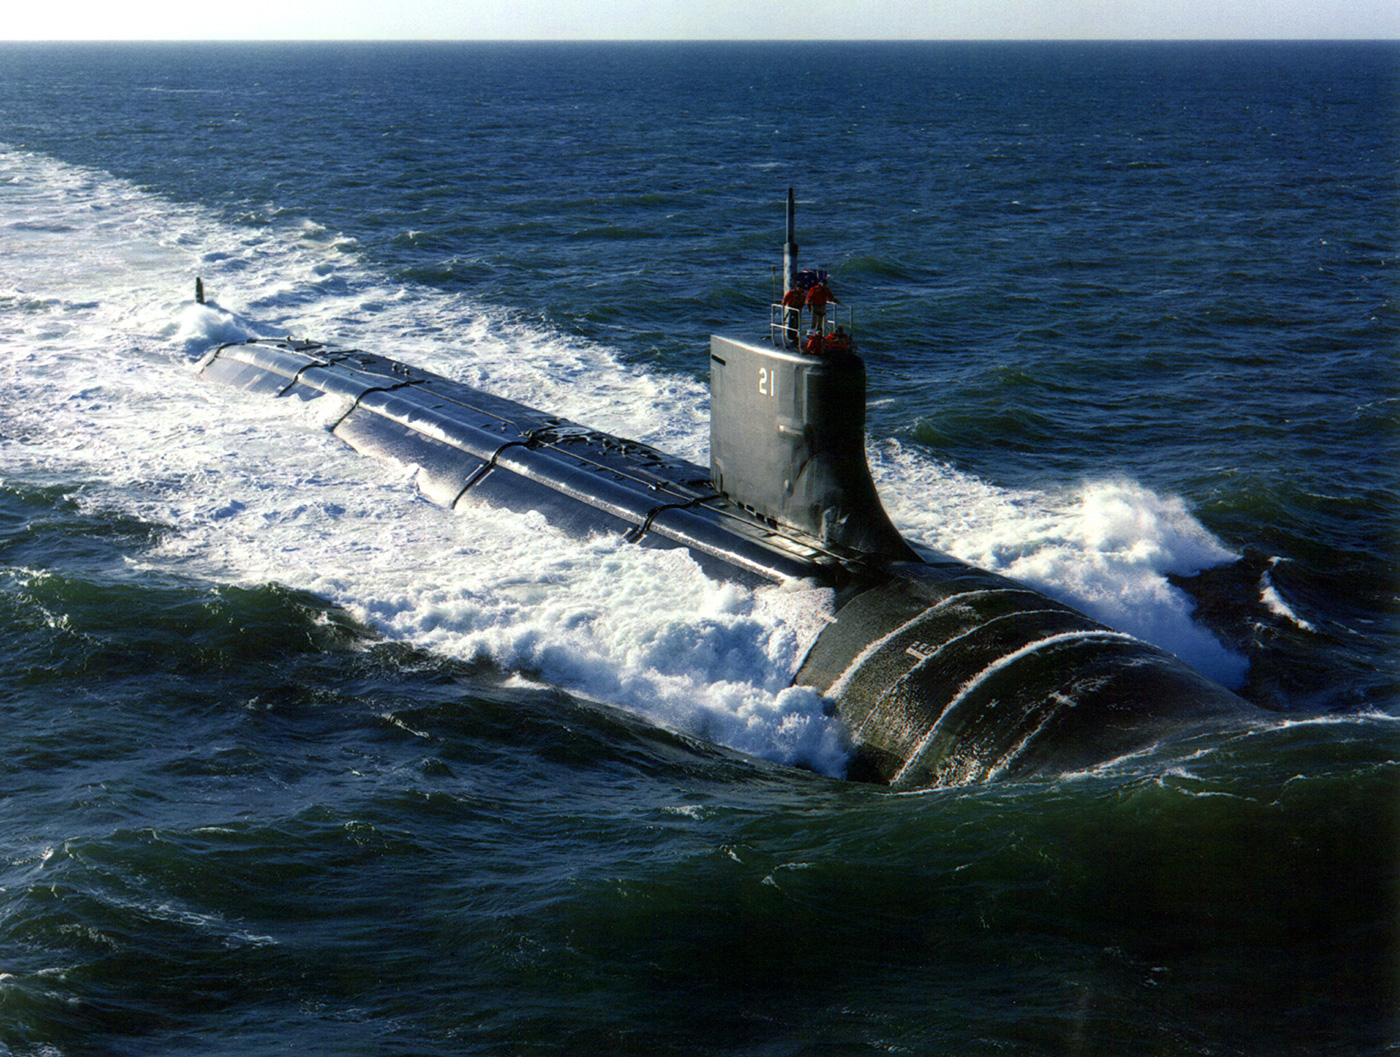 The U.S. submarine Seawolf (SSN 21) puts to sea in the Narragansett Bay operating area for her first at-sea trial operations. U.S. Navy photo courtesy of General Dynamics.